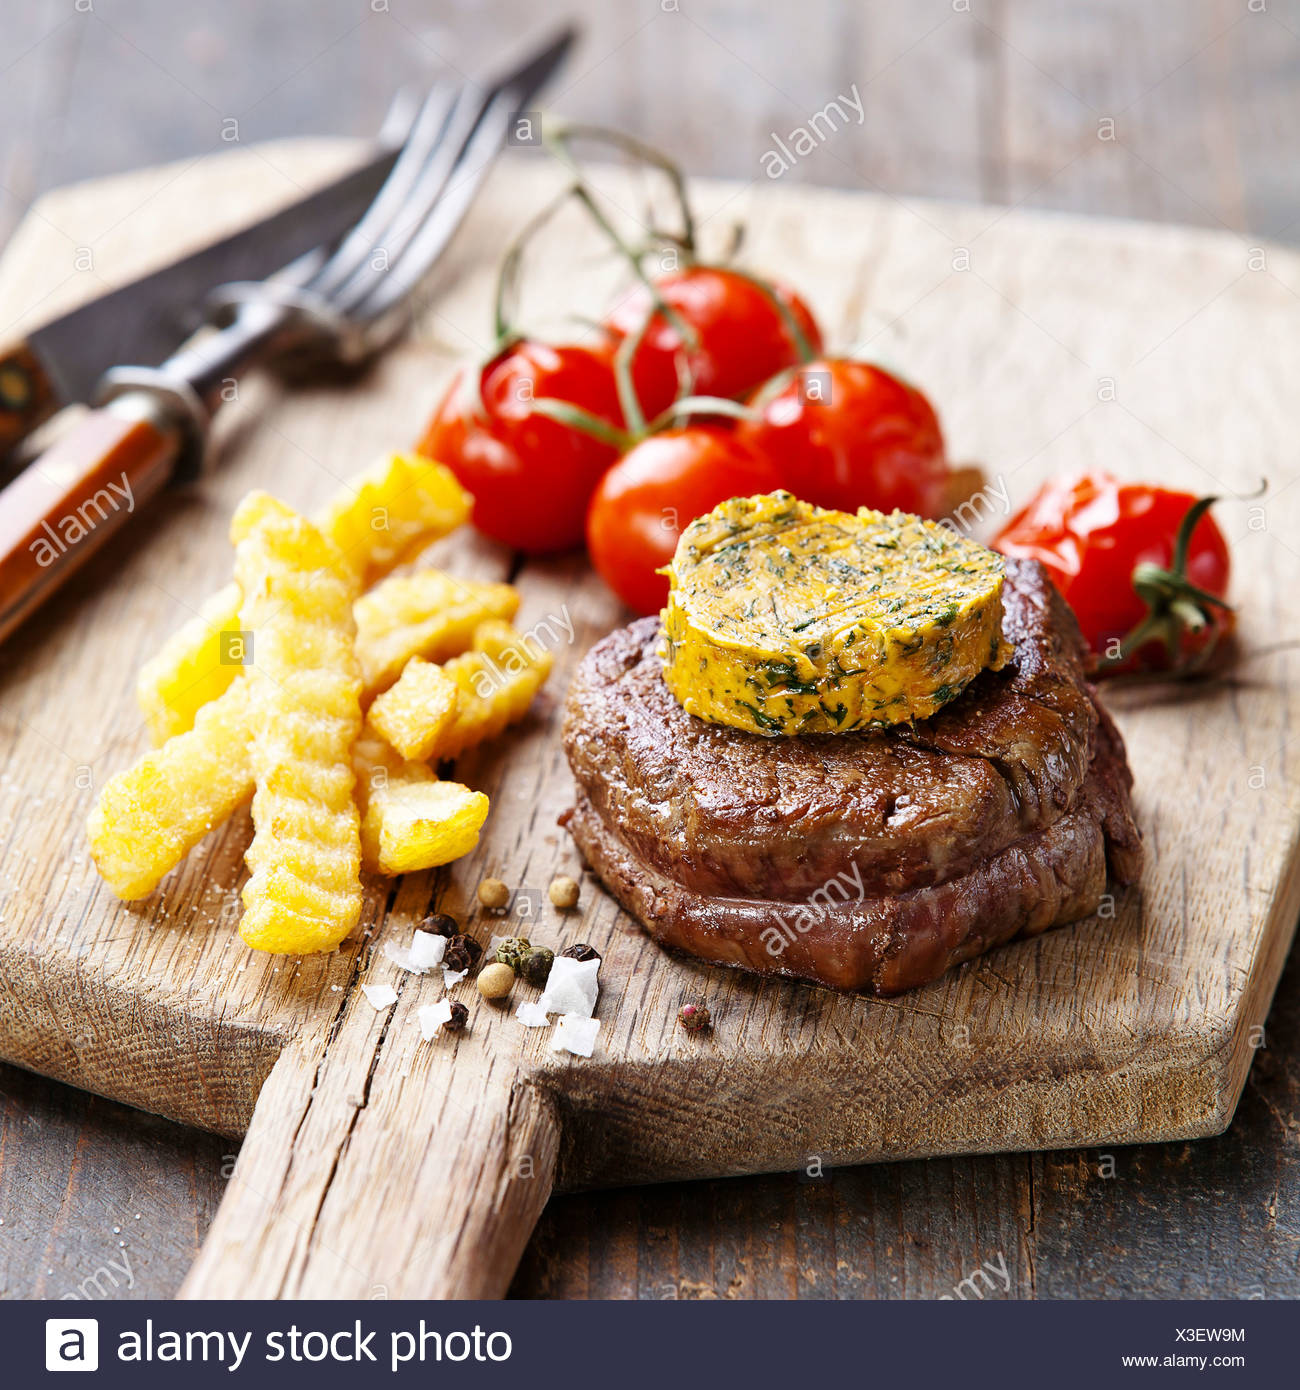 Beef Steak with Butter and Baked tomato - Stock Image